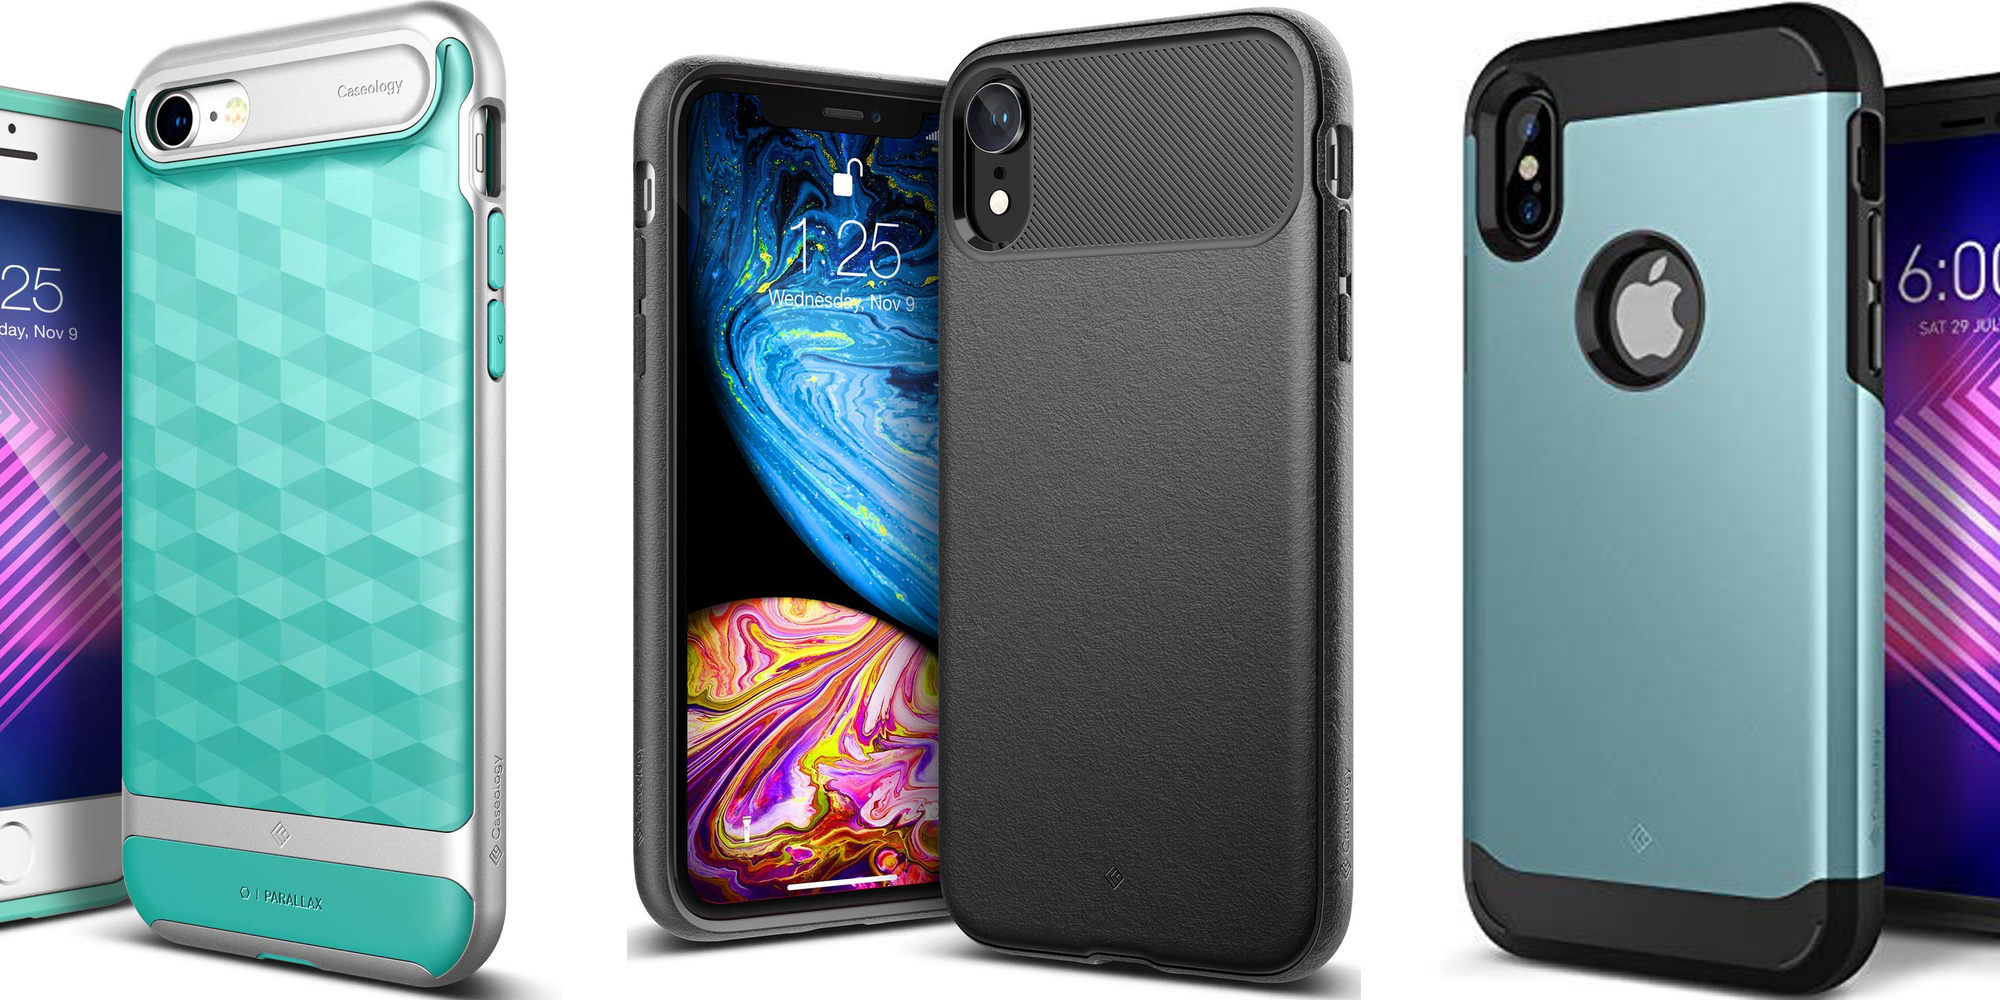 Wrap your iPhone XS/R/8/7/Plus in a stylish new case starting at $4 shipped